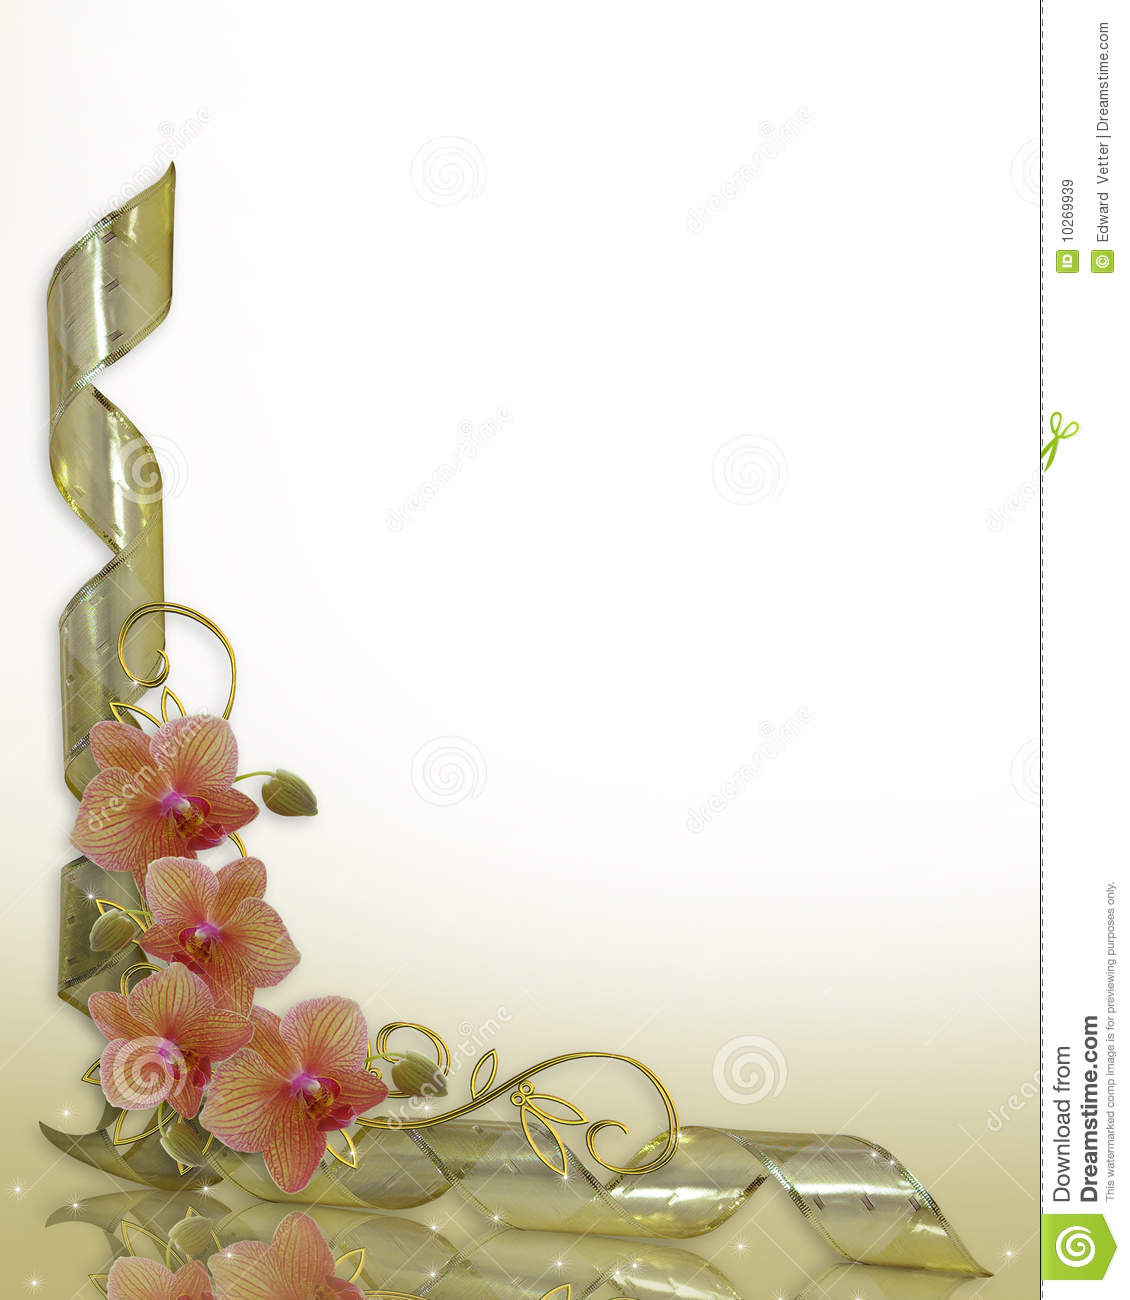 Orchid Clipart Border